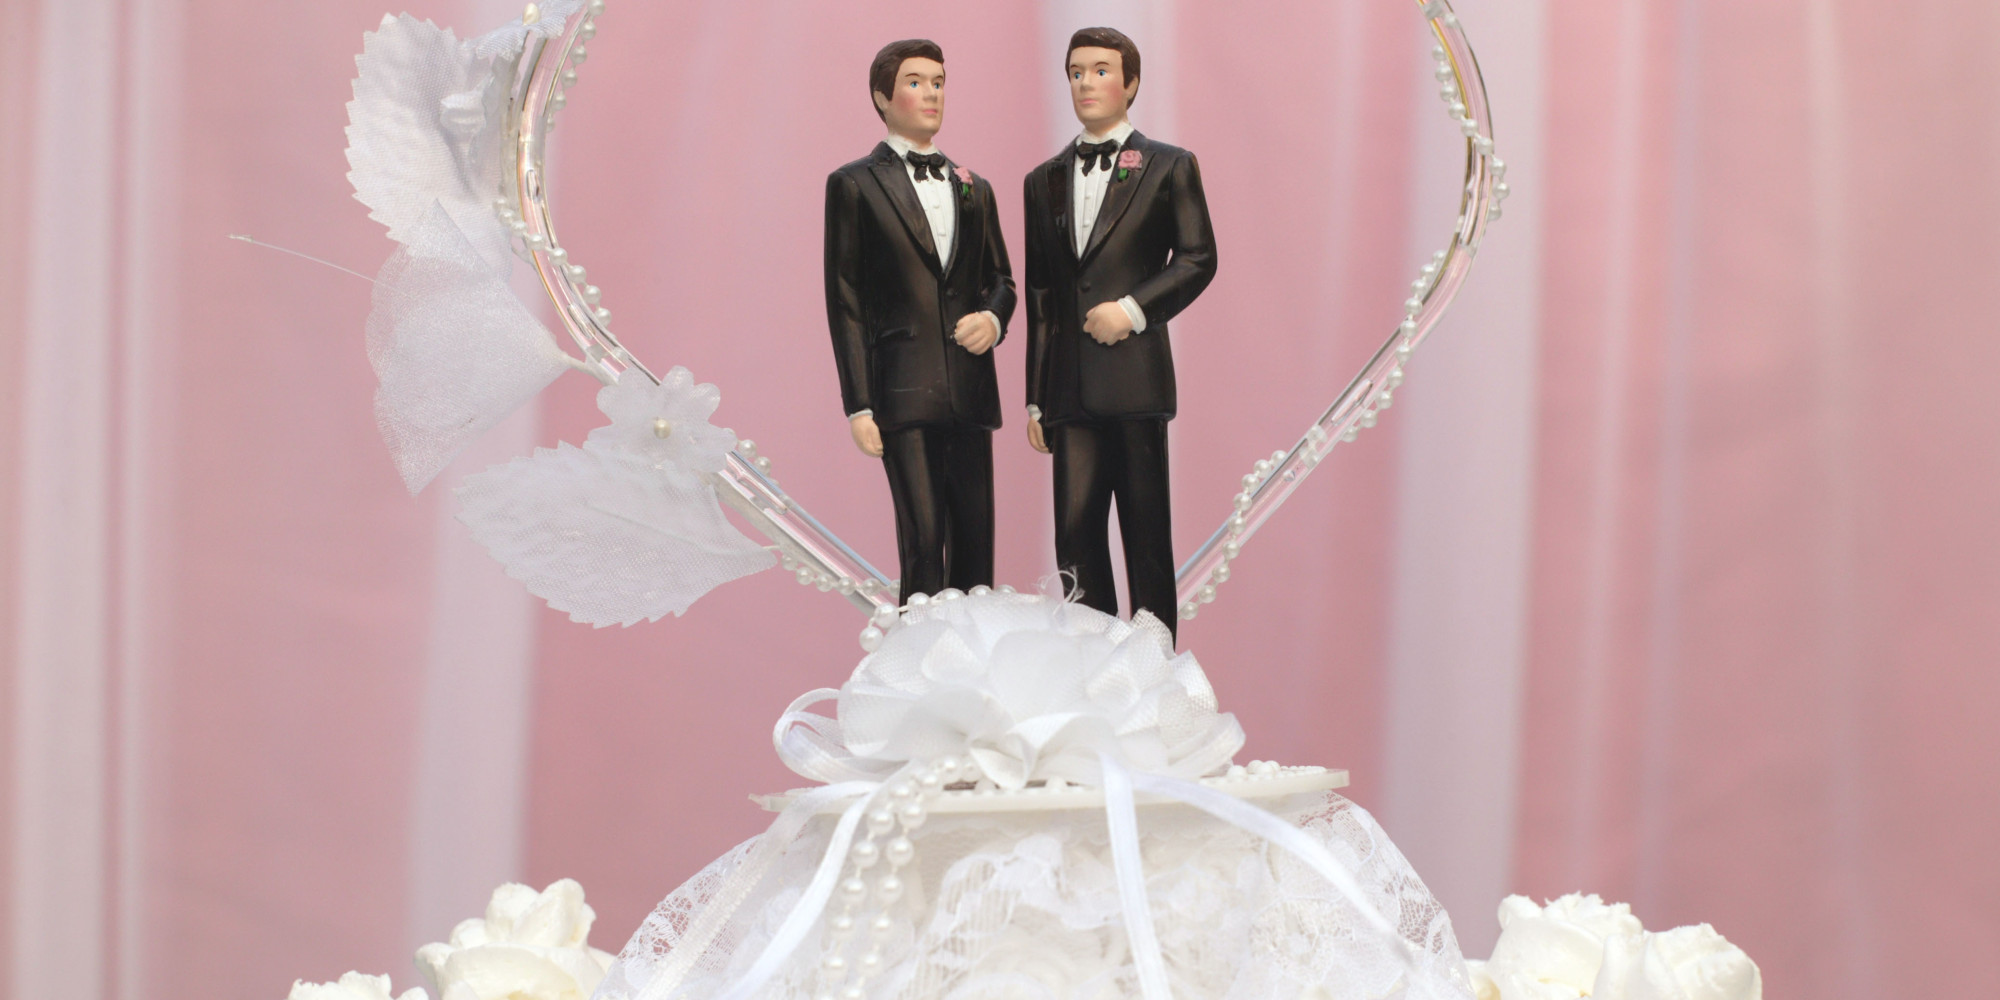 Wedding Cakes Gay  Some AL counties give marriage licenses others refuse